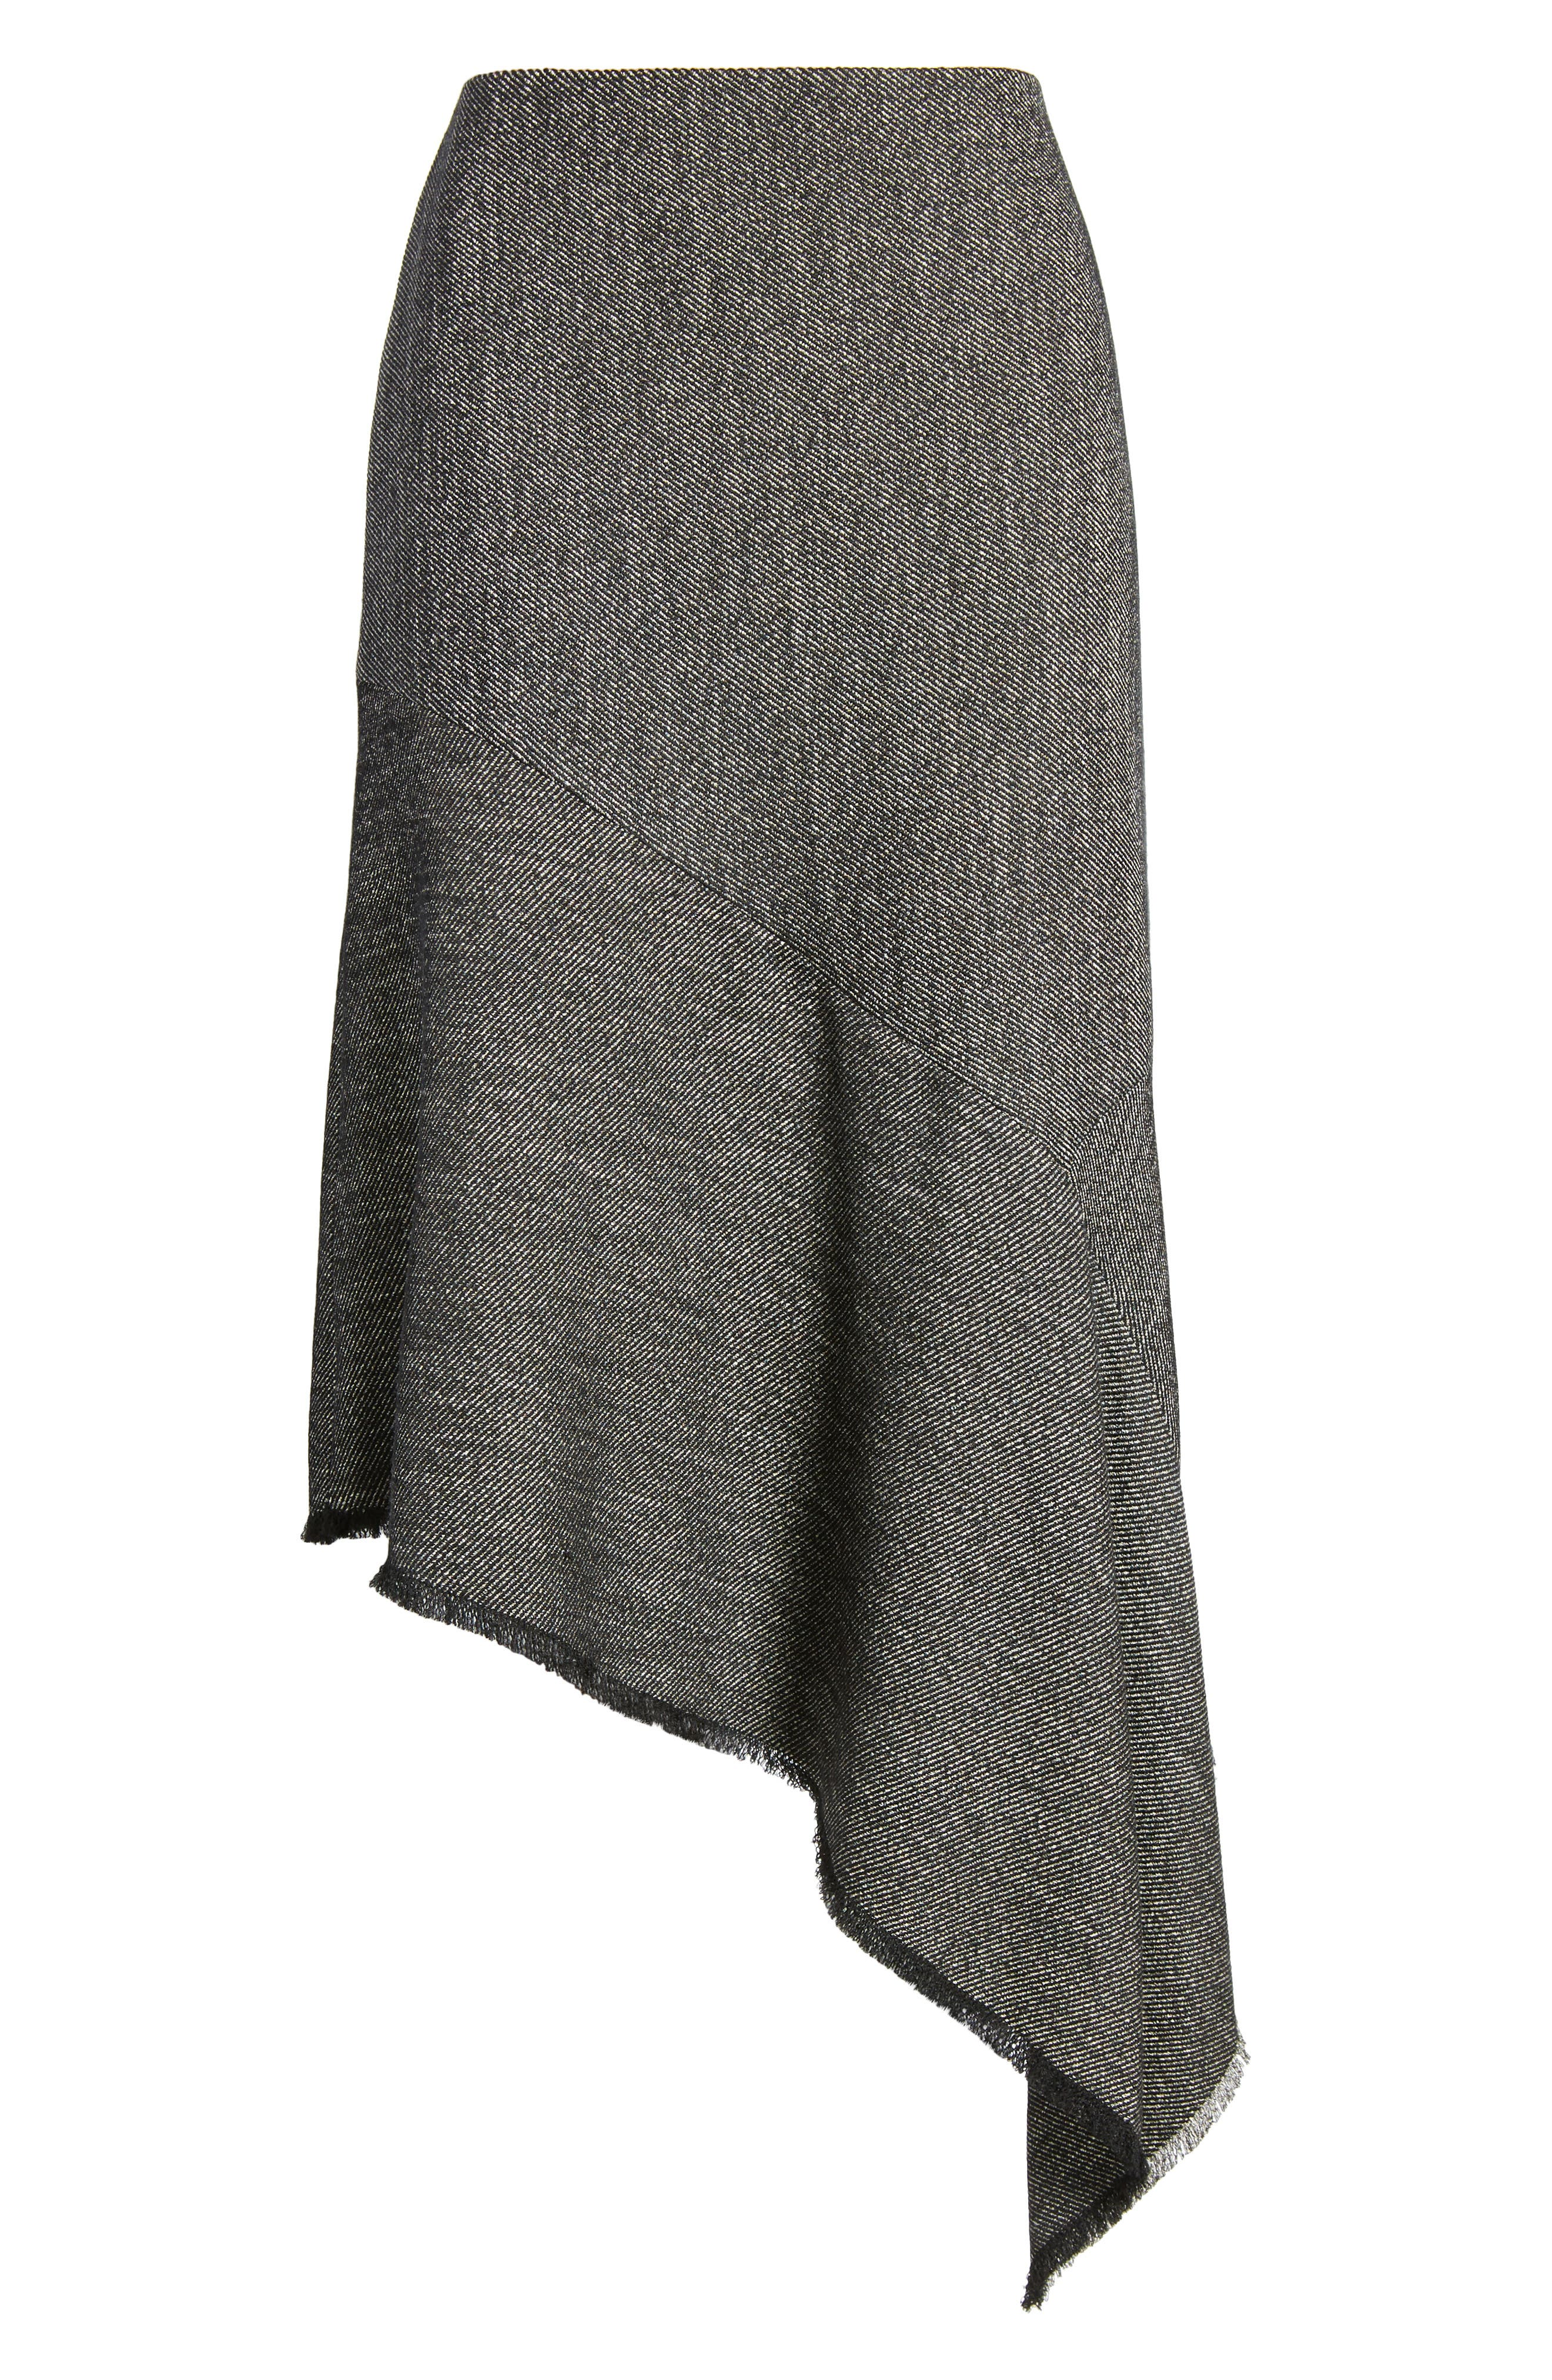 Asymmetrical Tweed Skirt,                             Alternate thumbnail 6, color,                             Black/ White